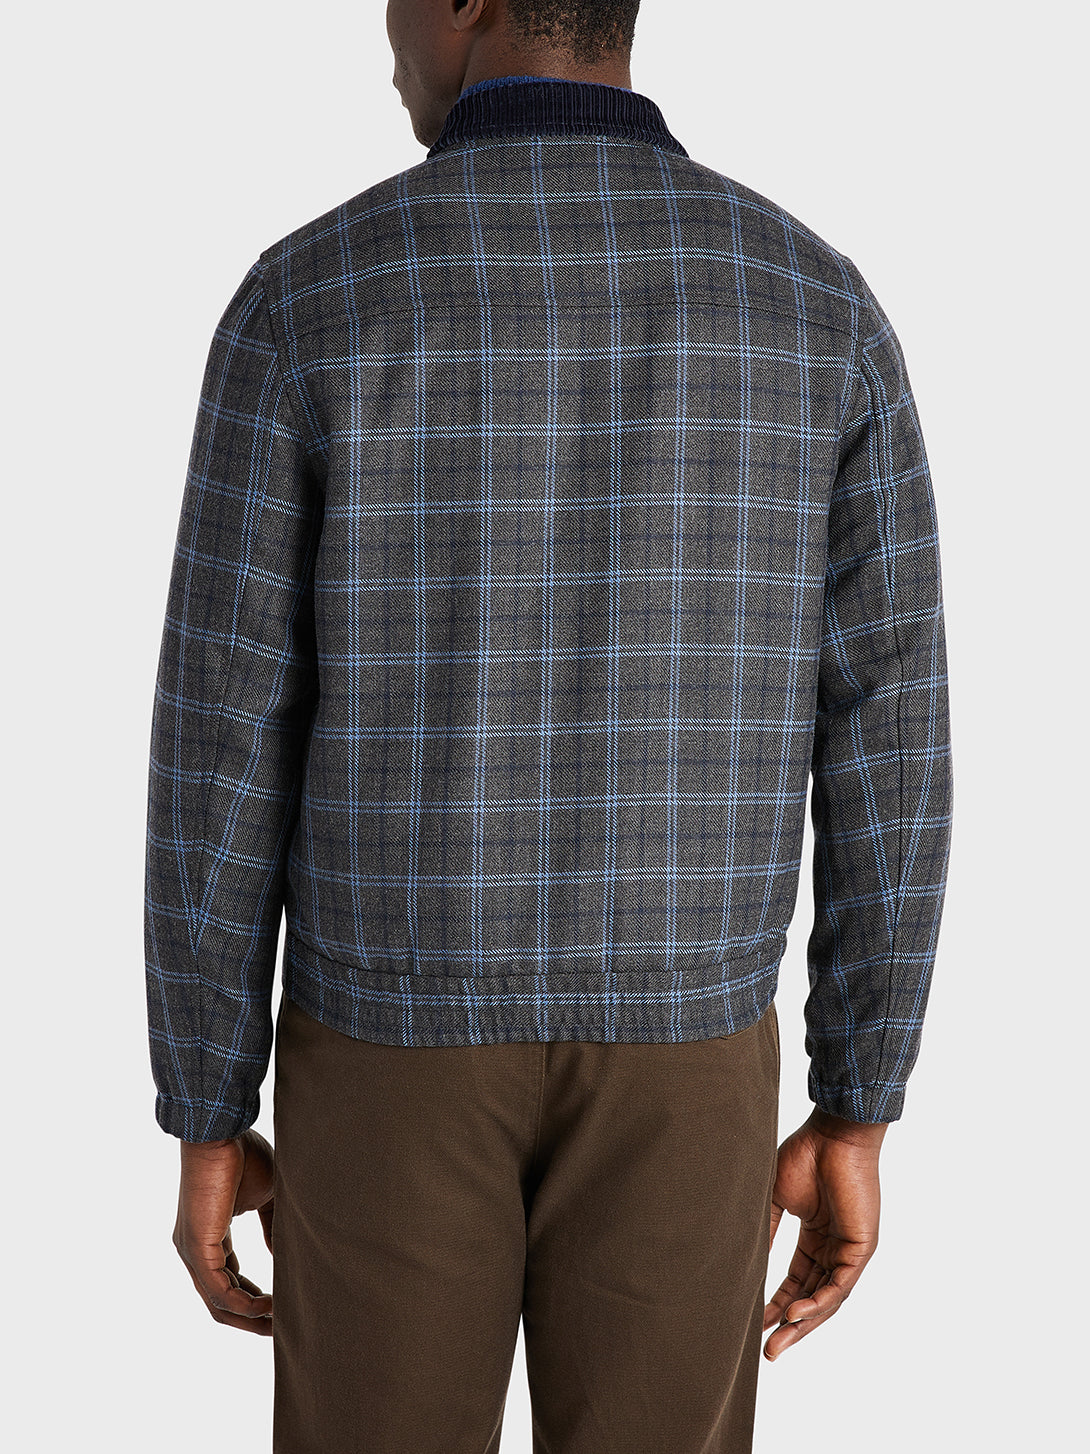 ONS Clothing Men's outerwear in DK GREY CHECK